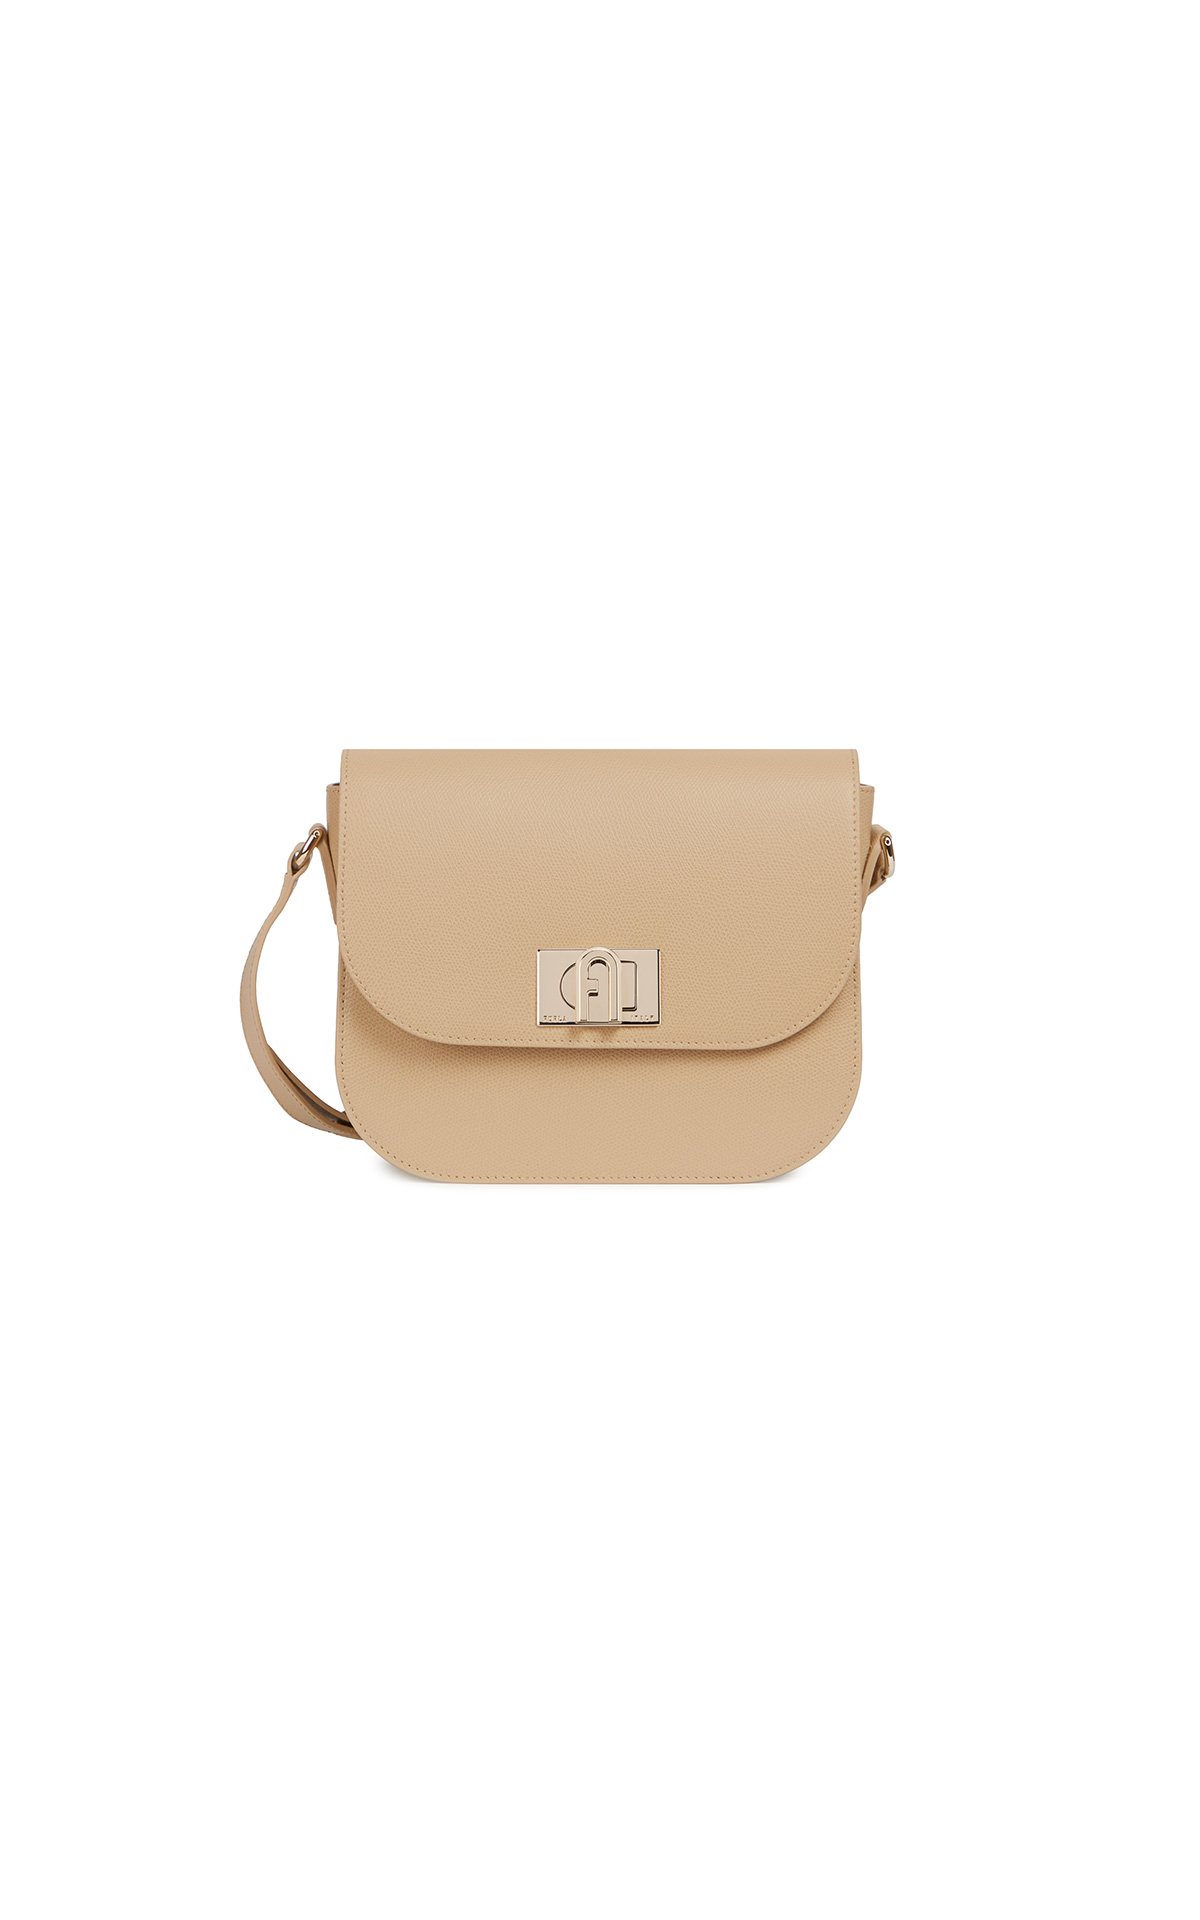 Furla 1927 Small Shoulder Bag 23 at The Bicester Village Shopping Collection